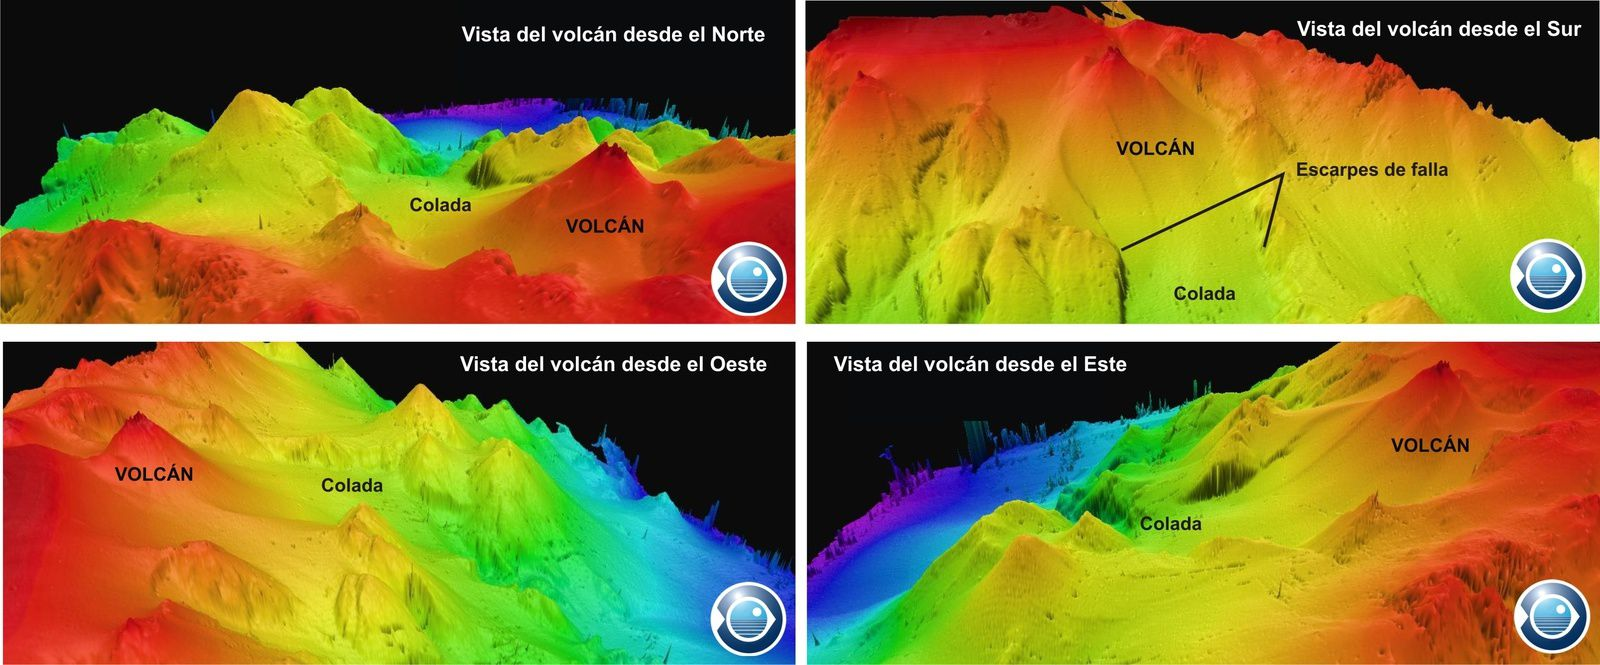 3D bathymetry of the submarine volcano south of La Restingua / El Hierro - Doc. 7-8.02.2012 / IEO